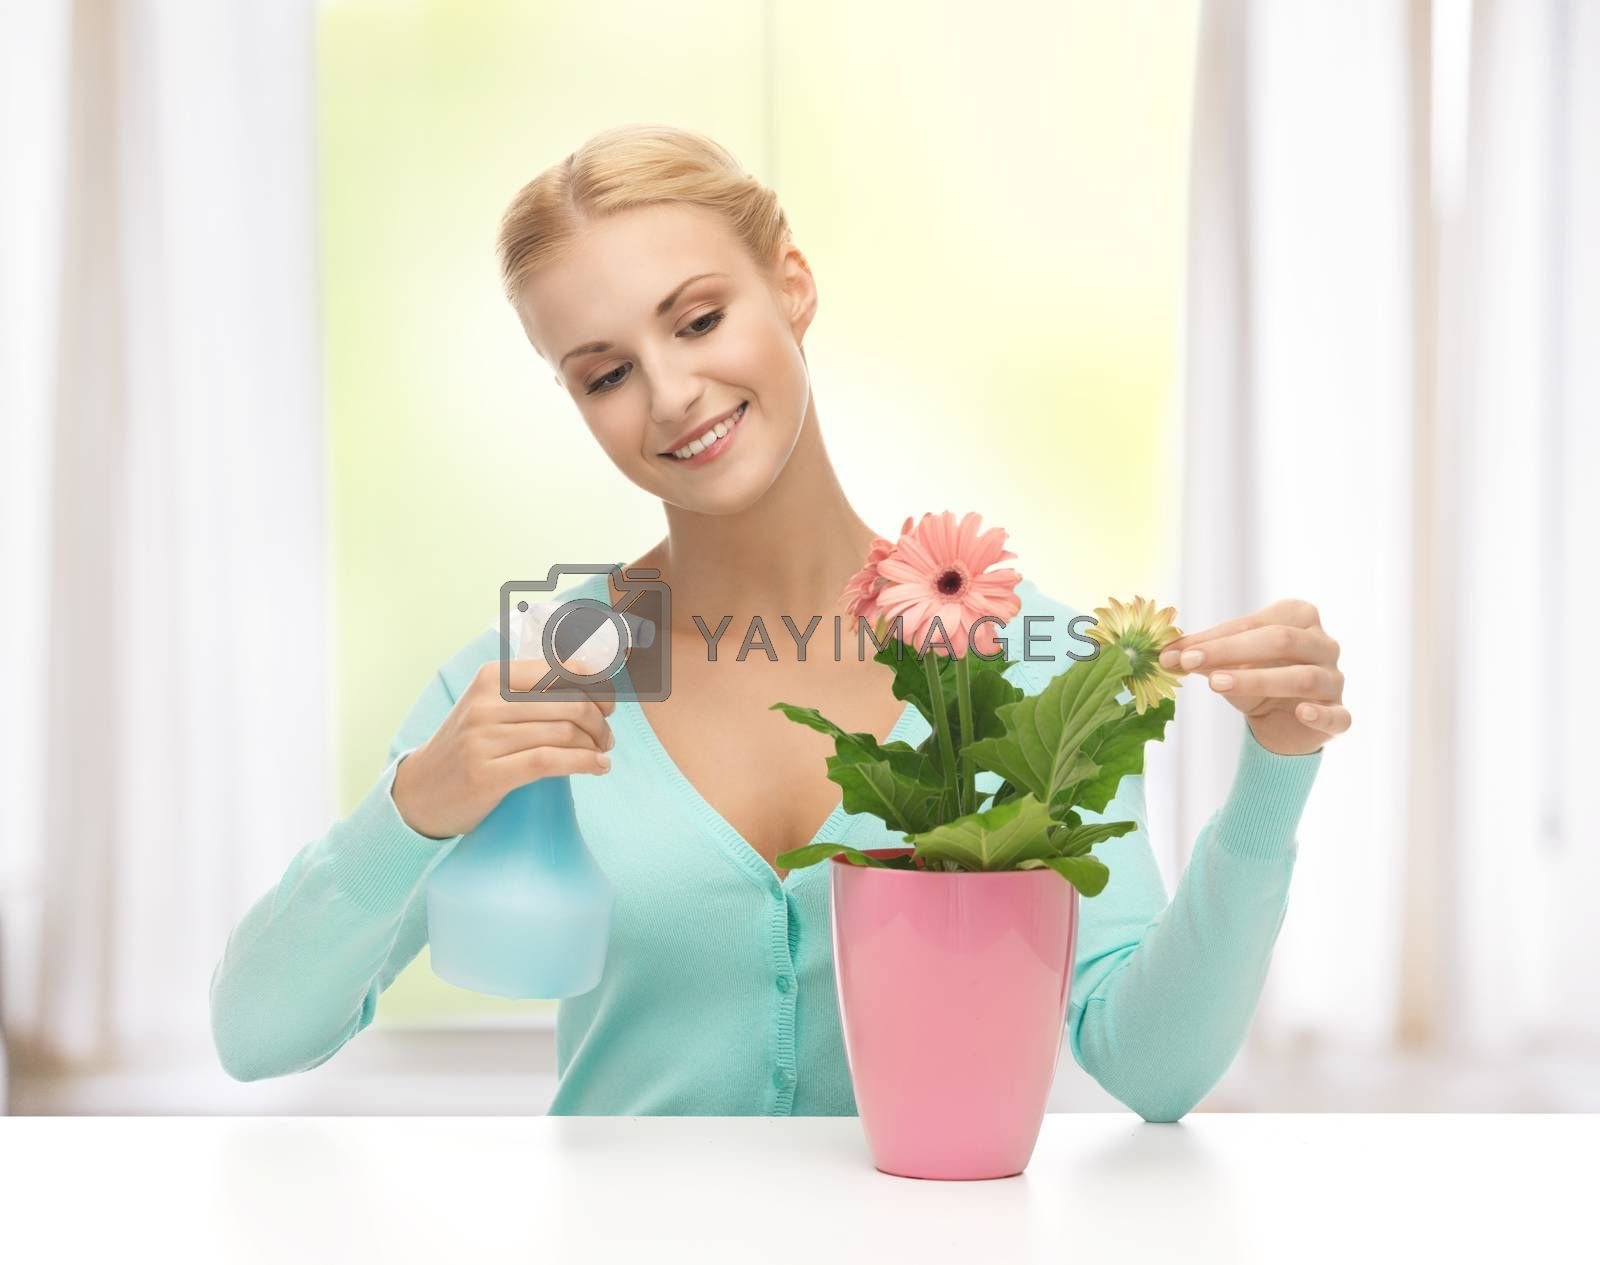 woman holding pot with flower and spray bottle by dolgachov